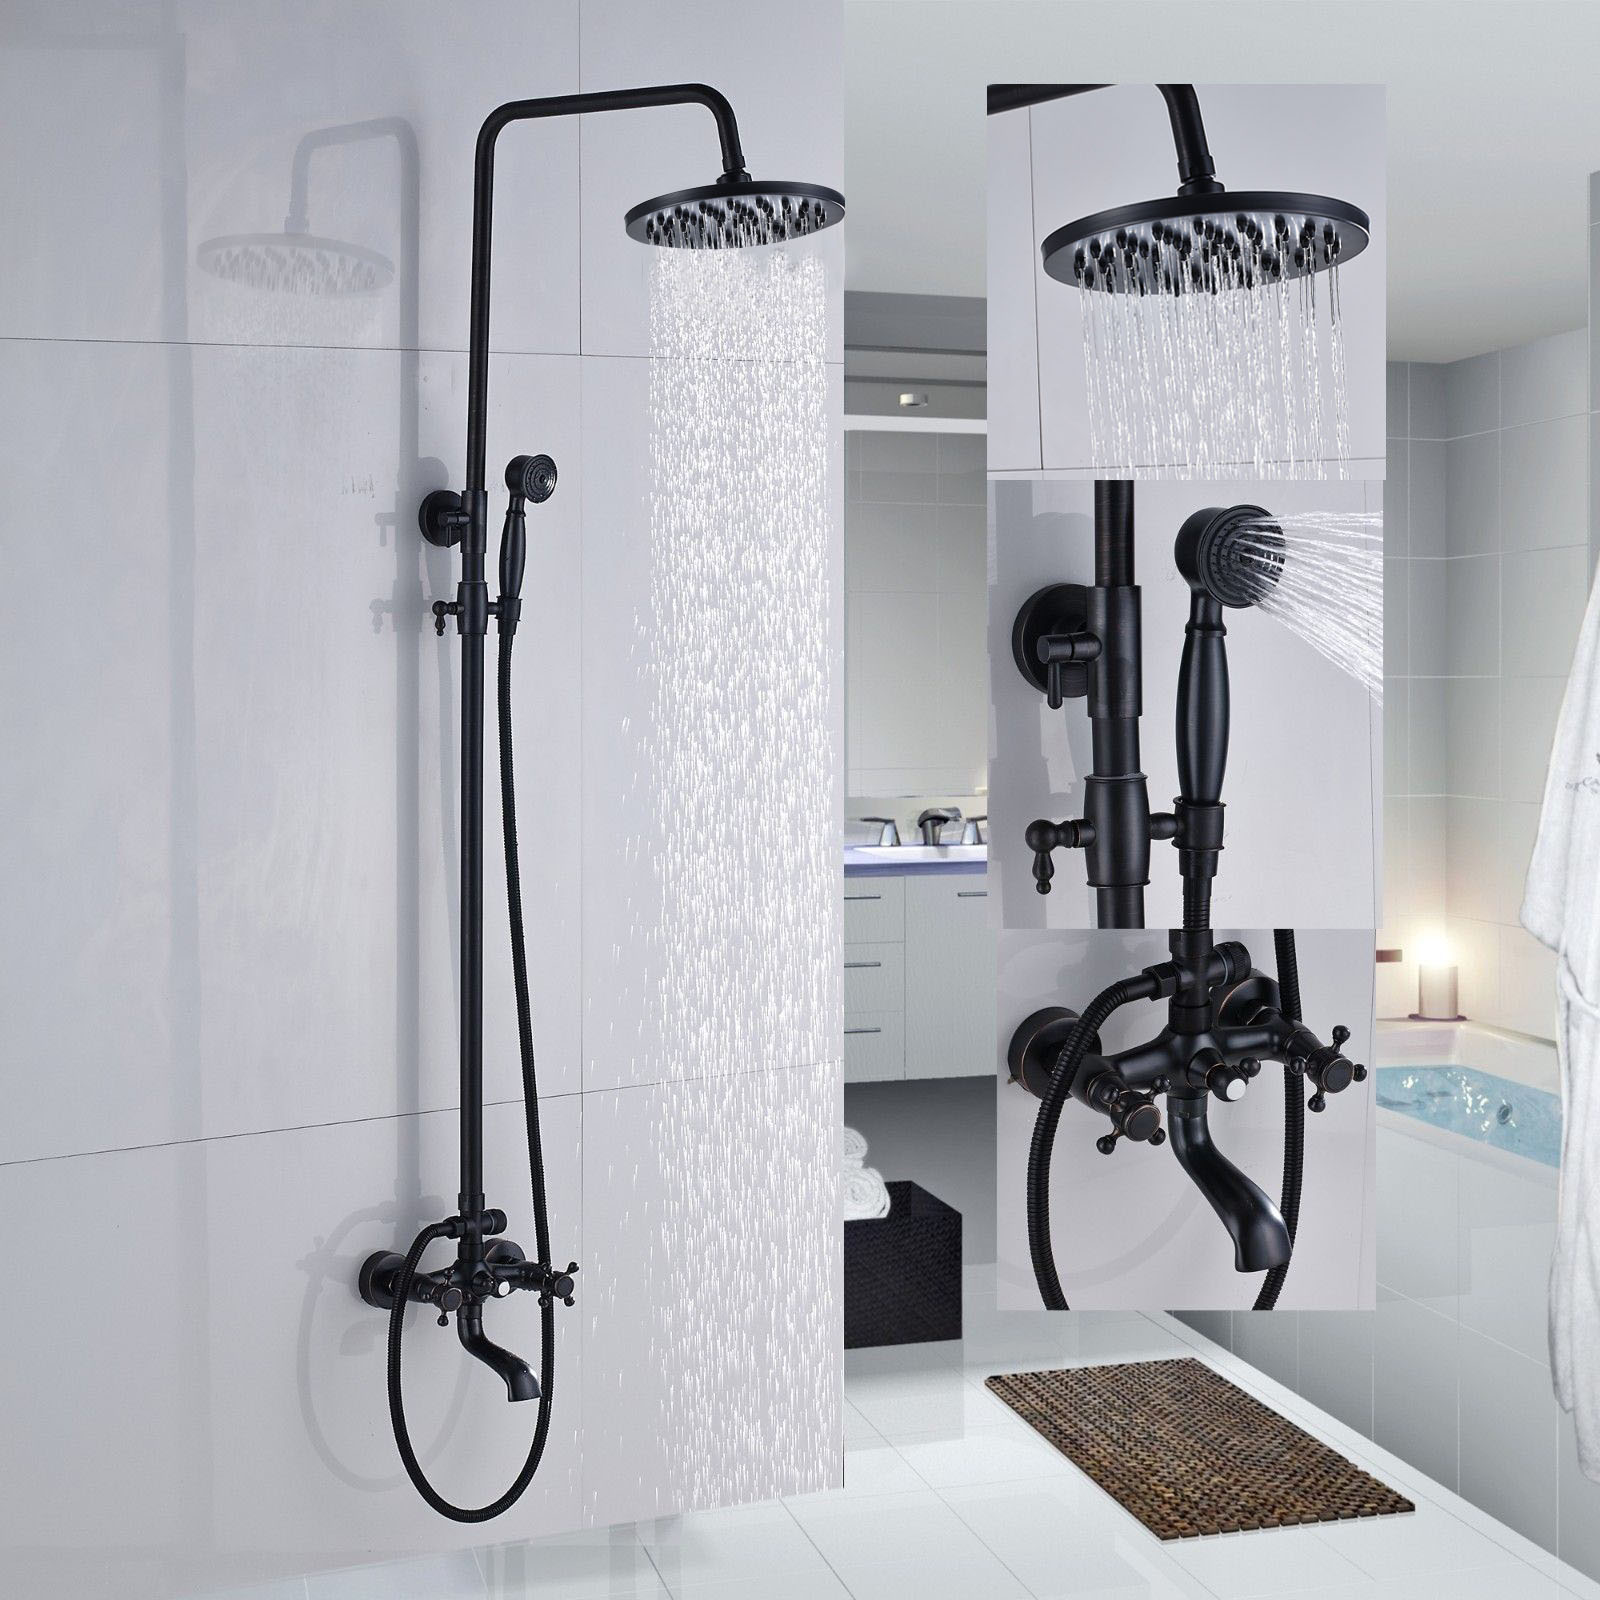 shower faucets oil rubbed bronze bathroom rainfall shower faucet set mixer tap with hand sprayer wall mounted zd227